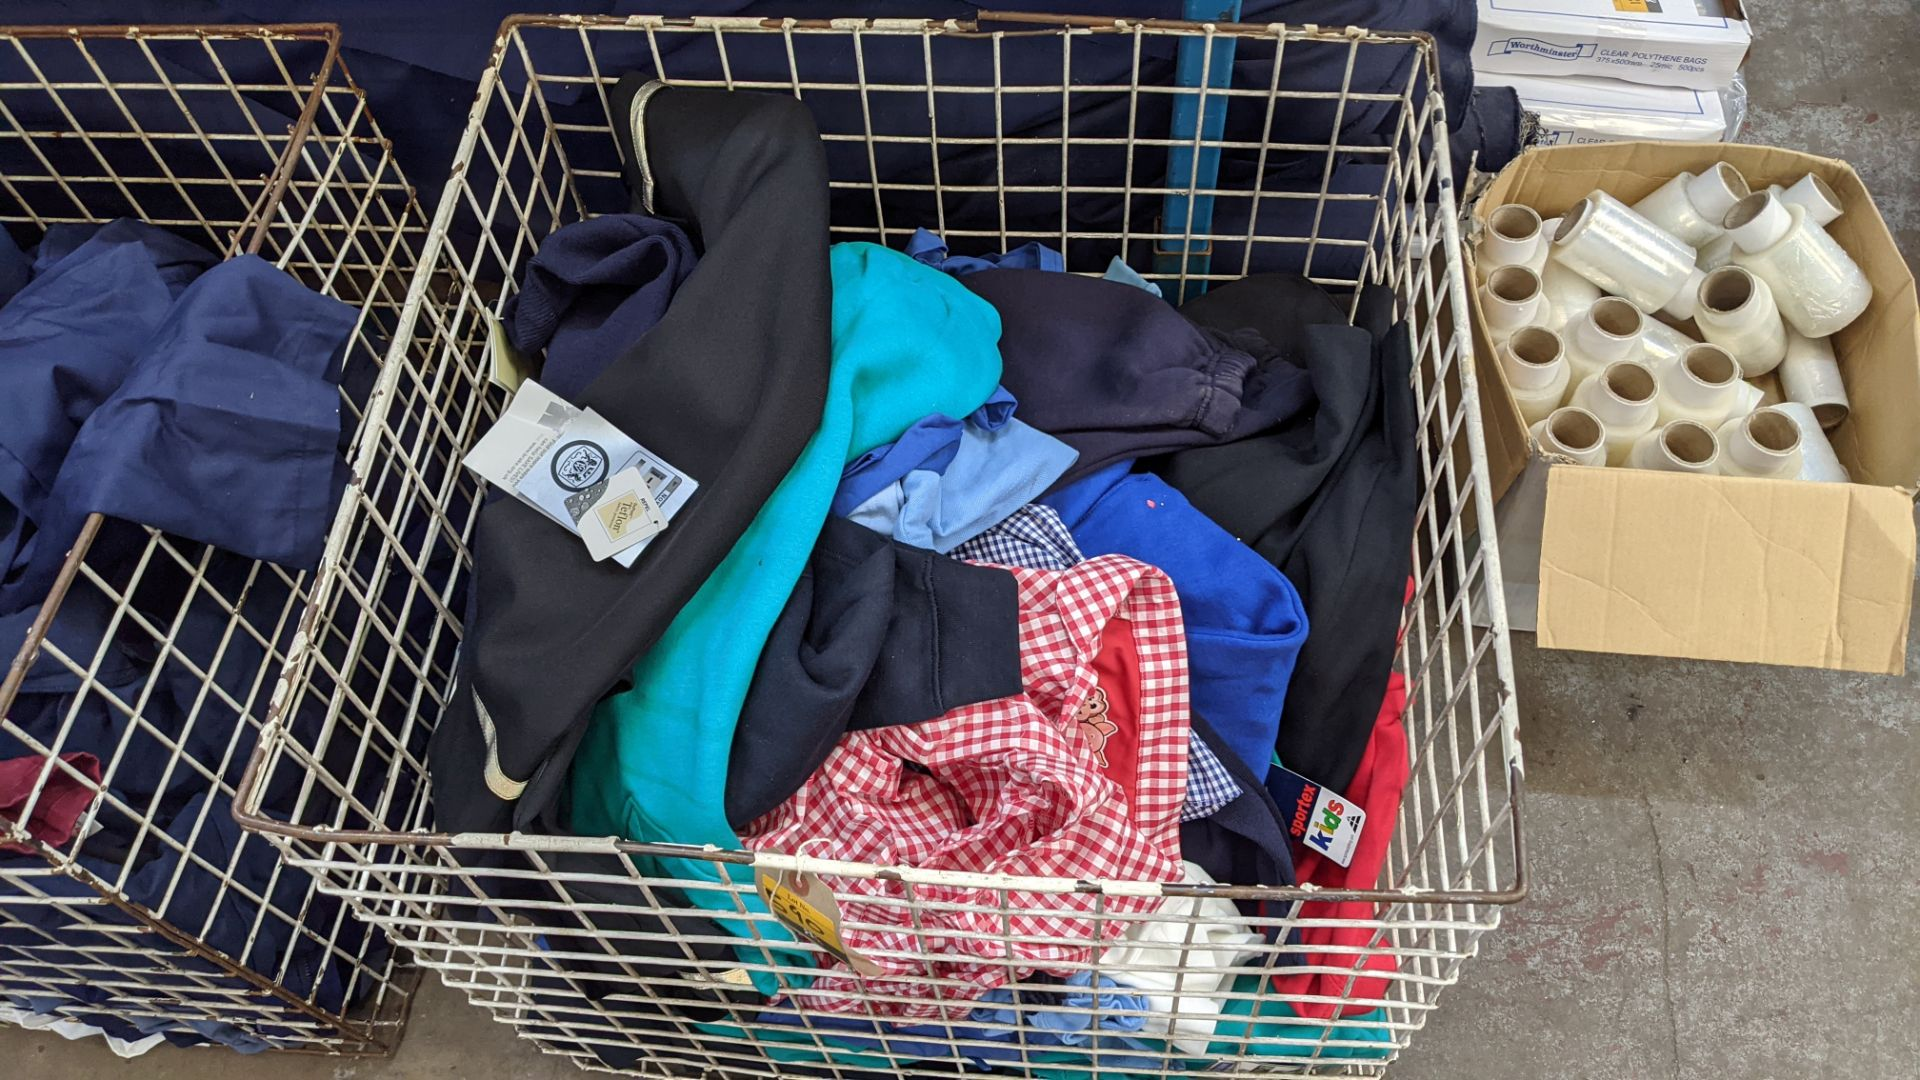 The contents of a cage of children's clothing, sweatshirts, t-shirts & more - Image 7 of 7